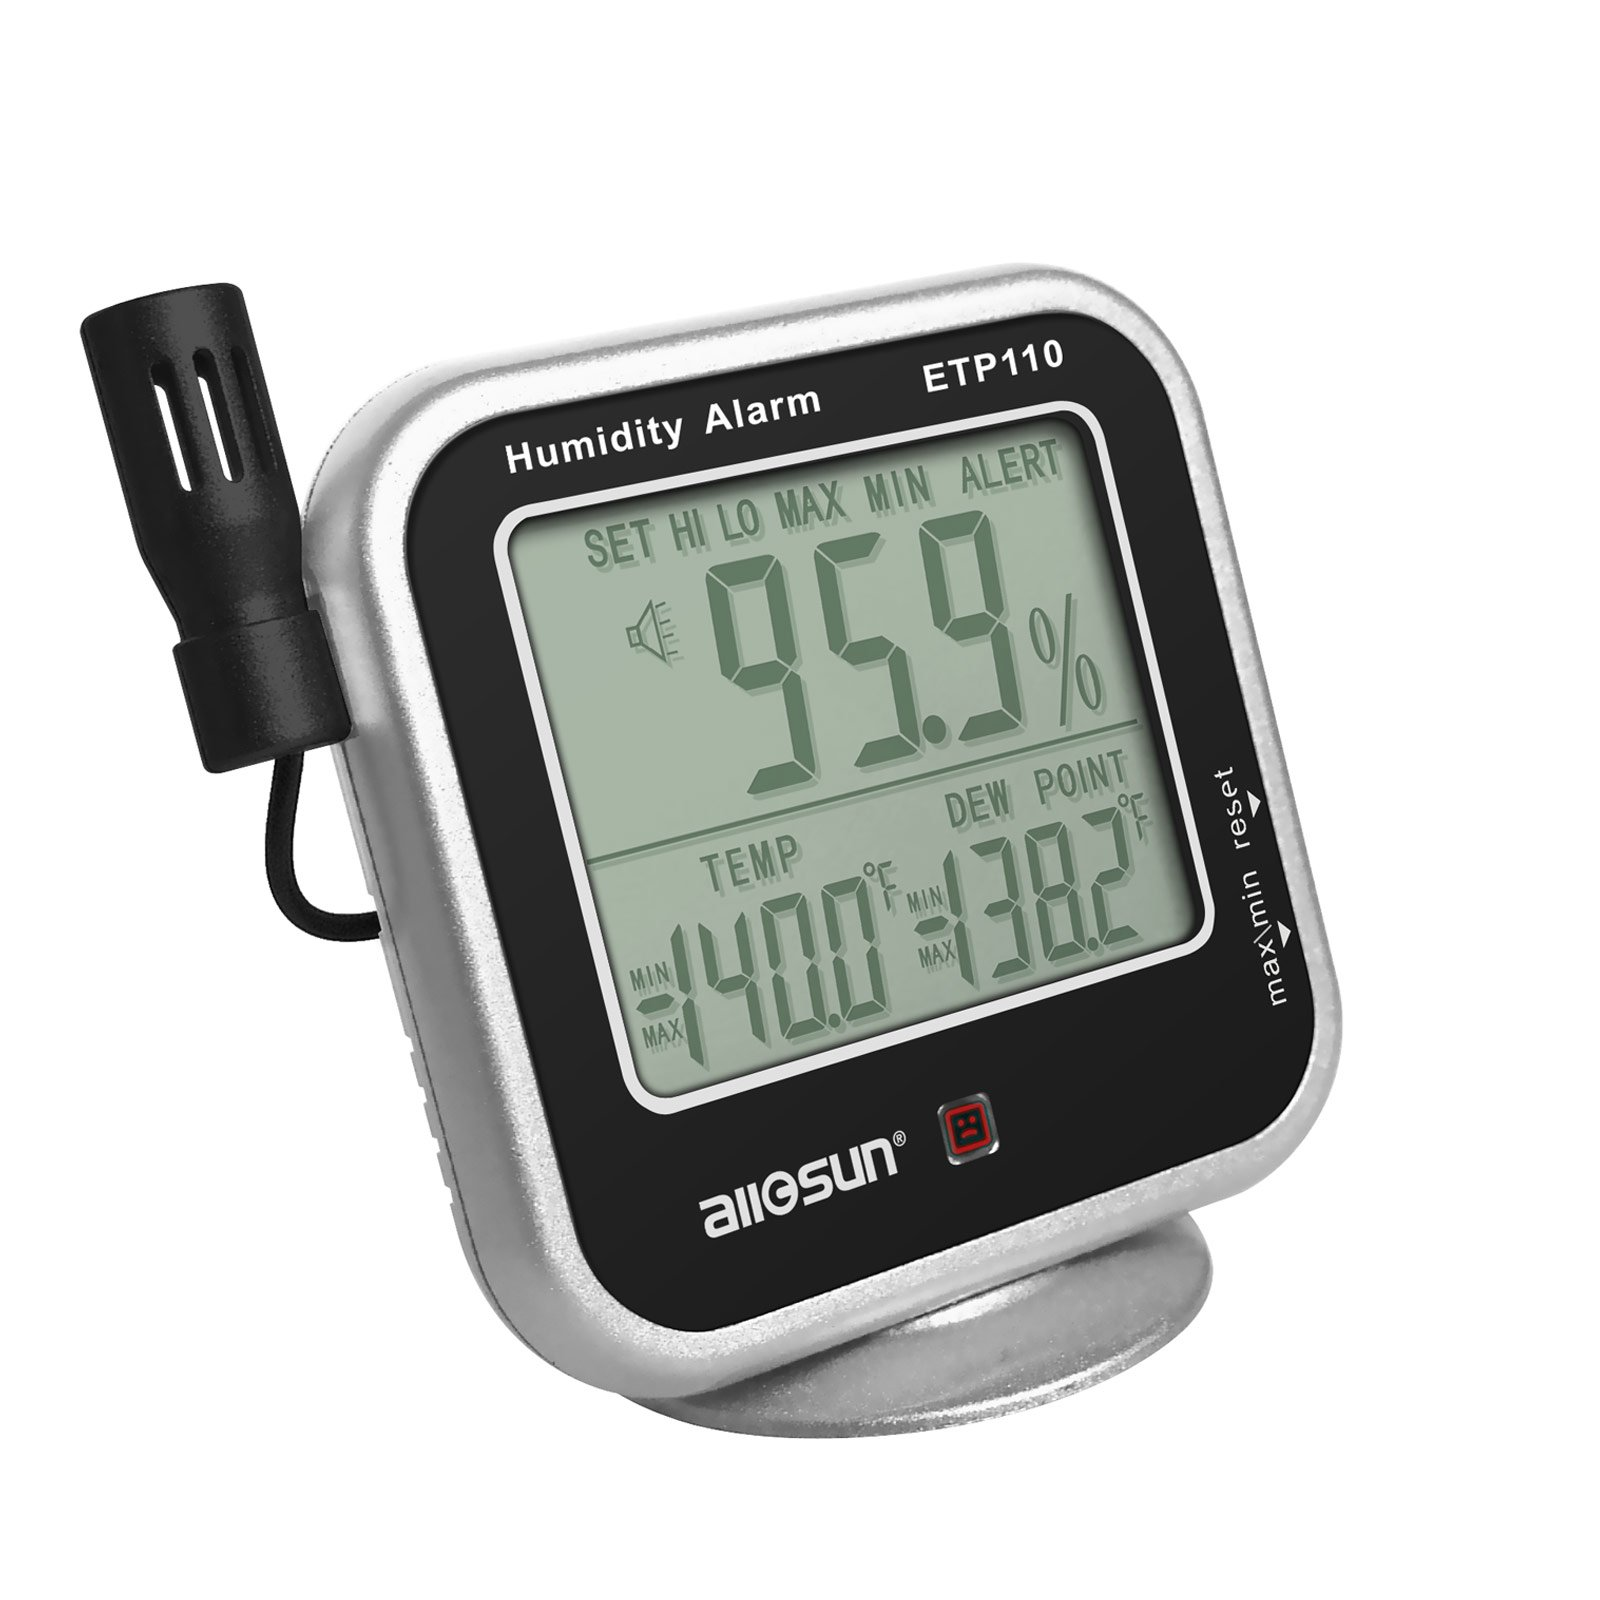 all-sun Digital Thermo-hygrometer with Temperature Alarm & Remote Probe/ Humidity Monitor / Dew-point Meter by all-sun